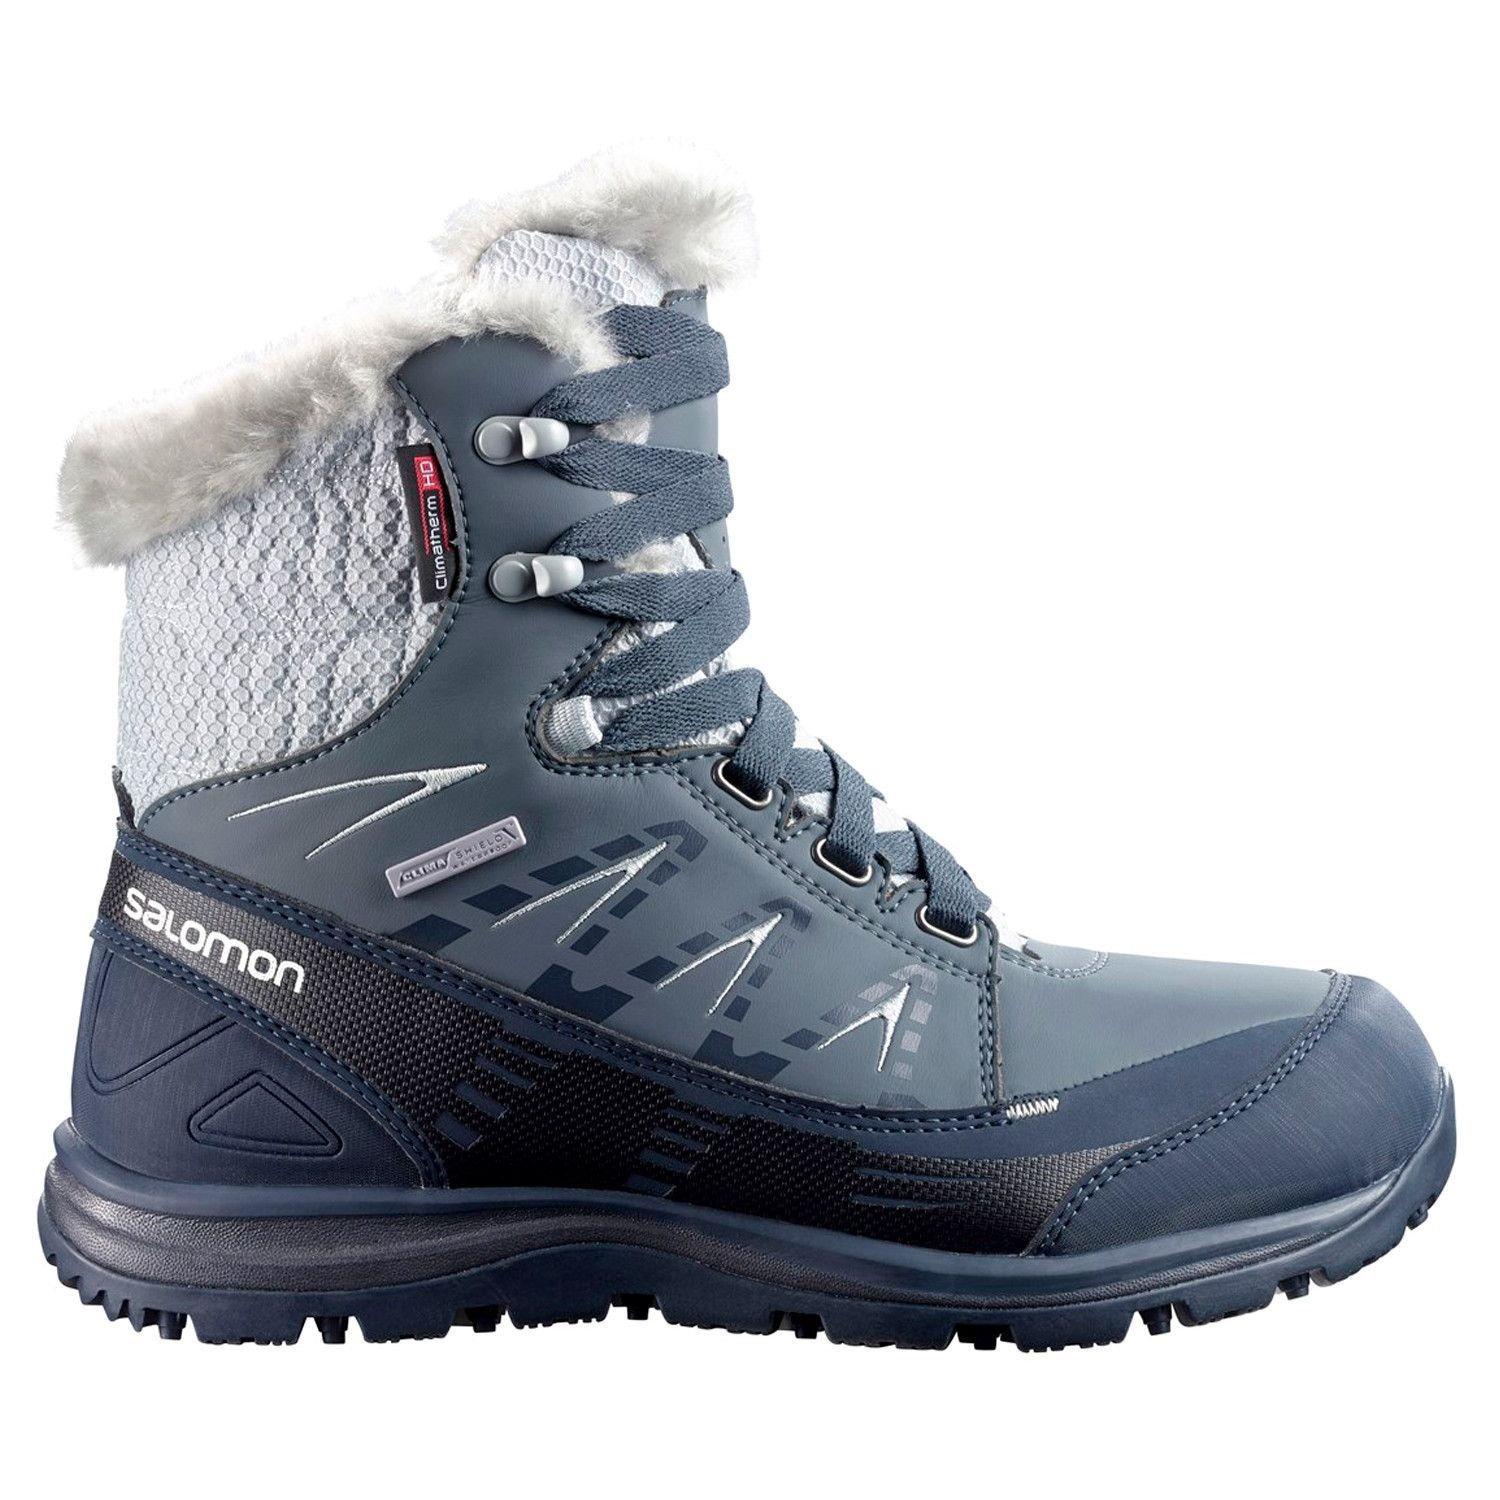 Model Salomon Pearl Boa Snowboard Boots  Women39s  Demo 2011  Evo Outlet